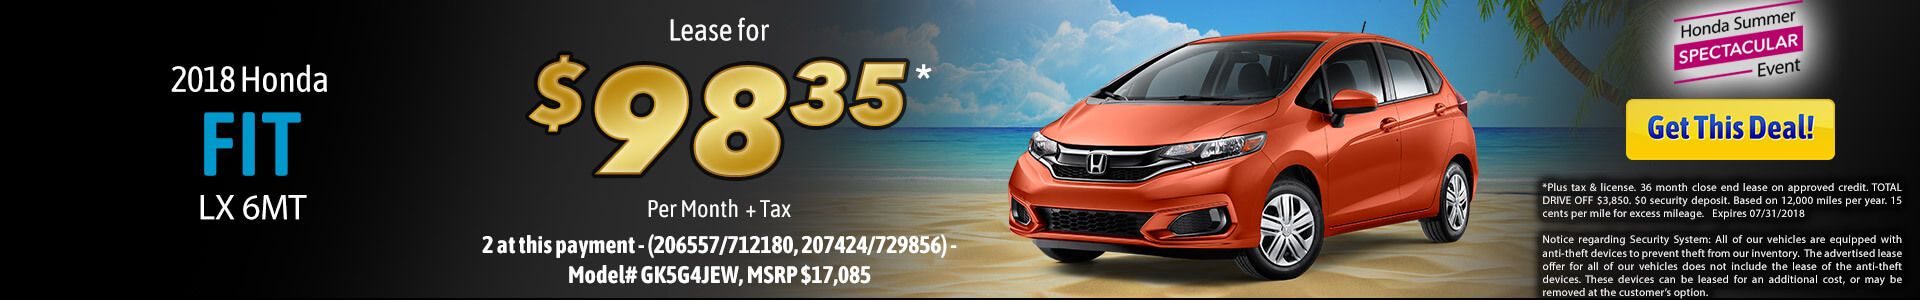 Fit Lease $98.39